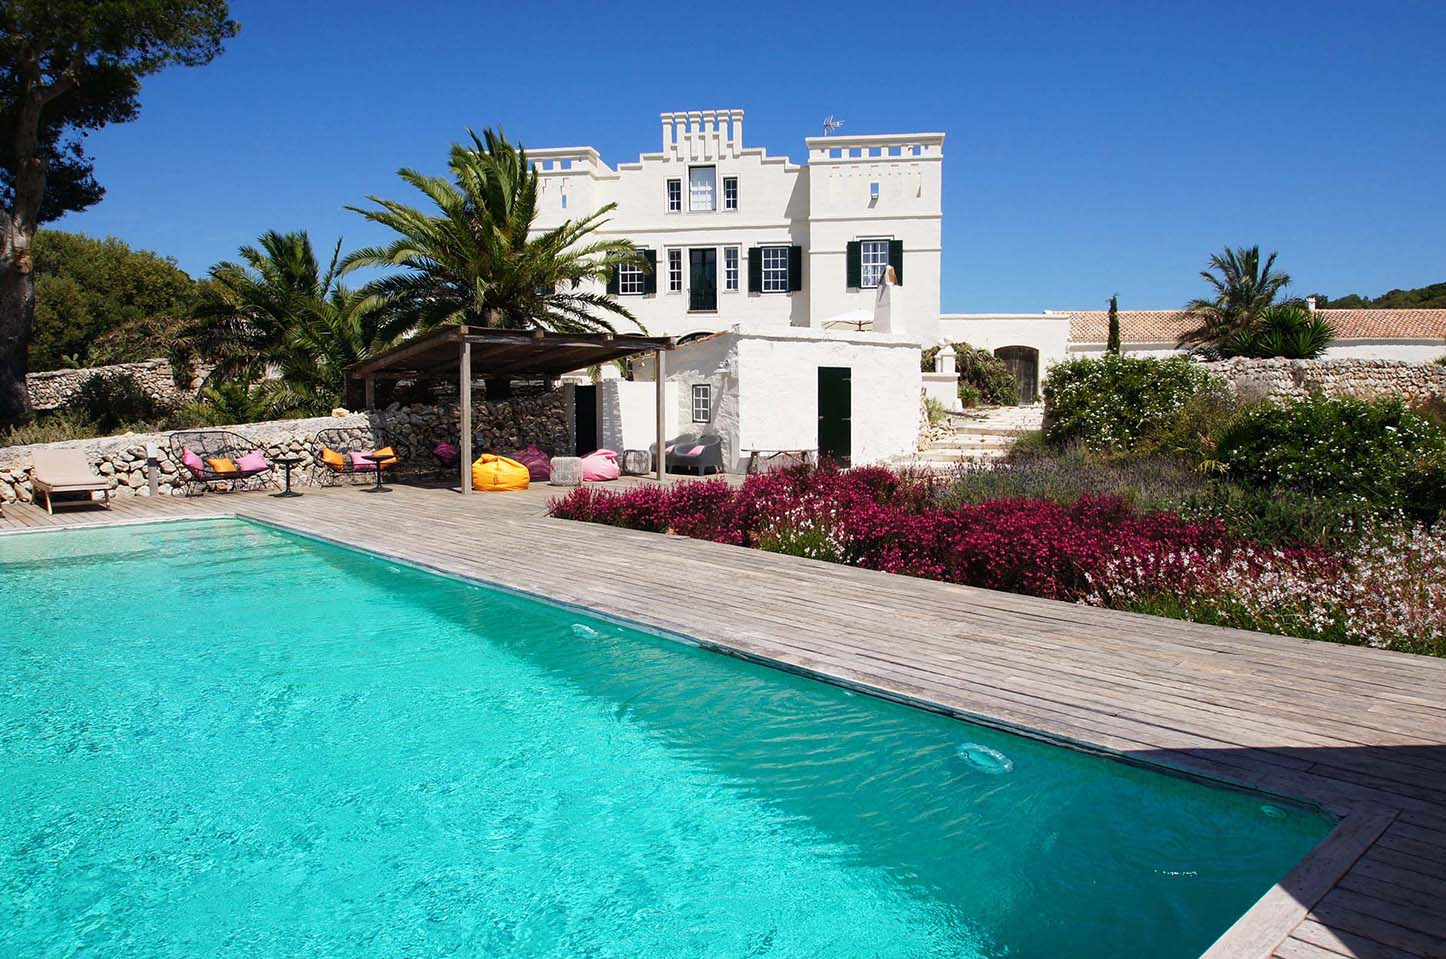 Exclusive and private 5 star villa to rent in Menorca